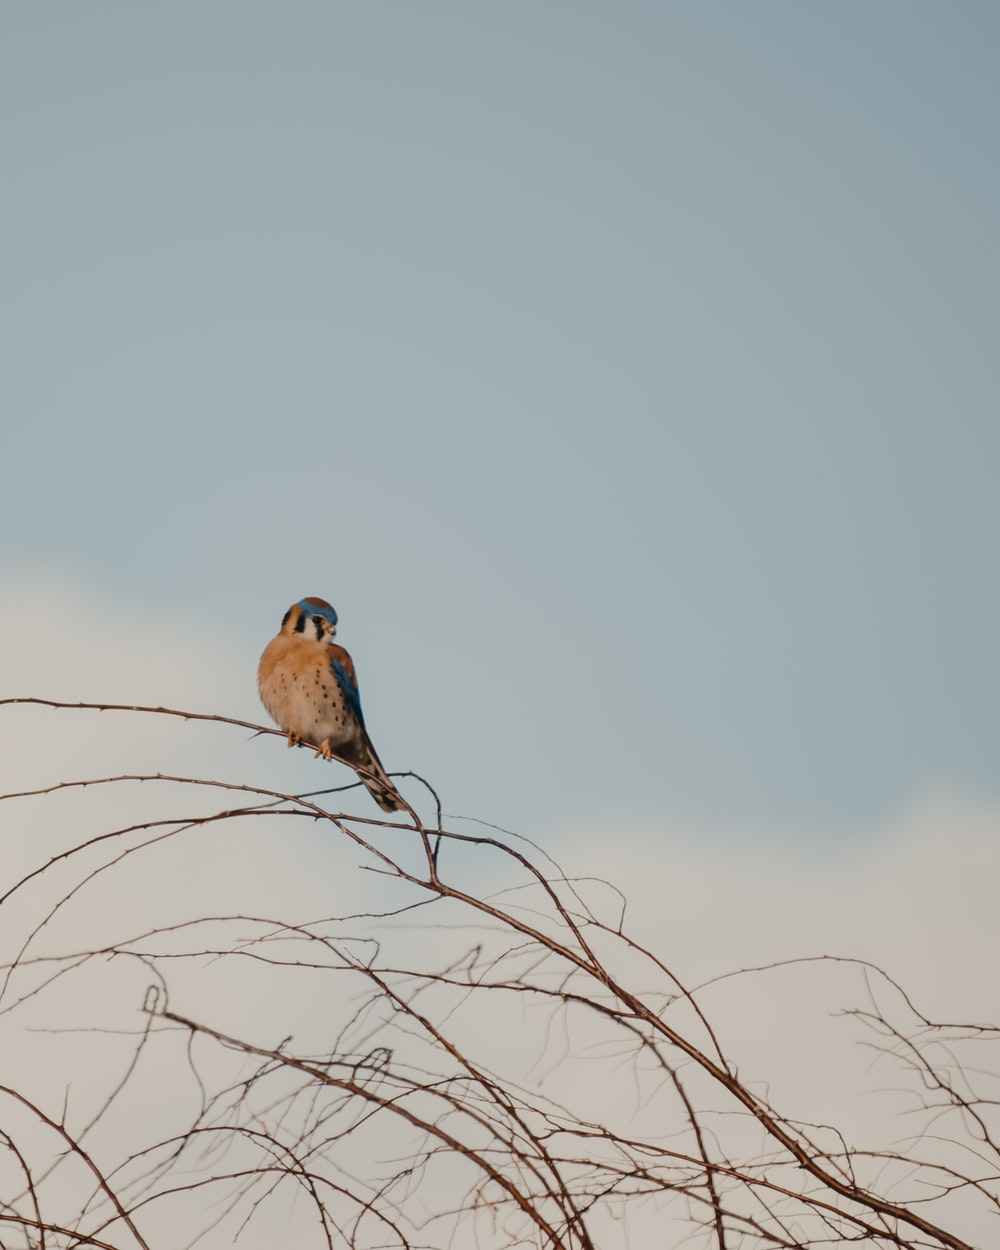 brown bird perched on brown tree branch during daytime